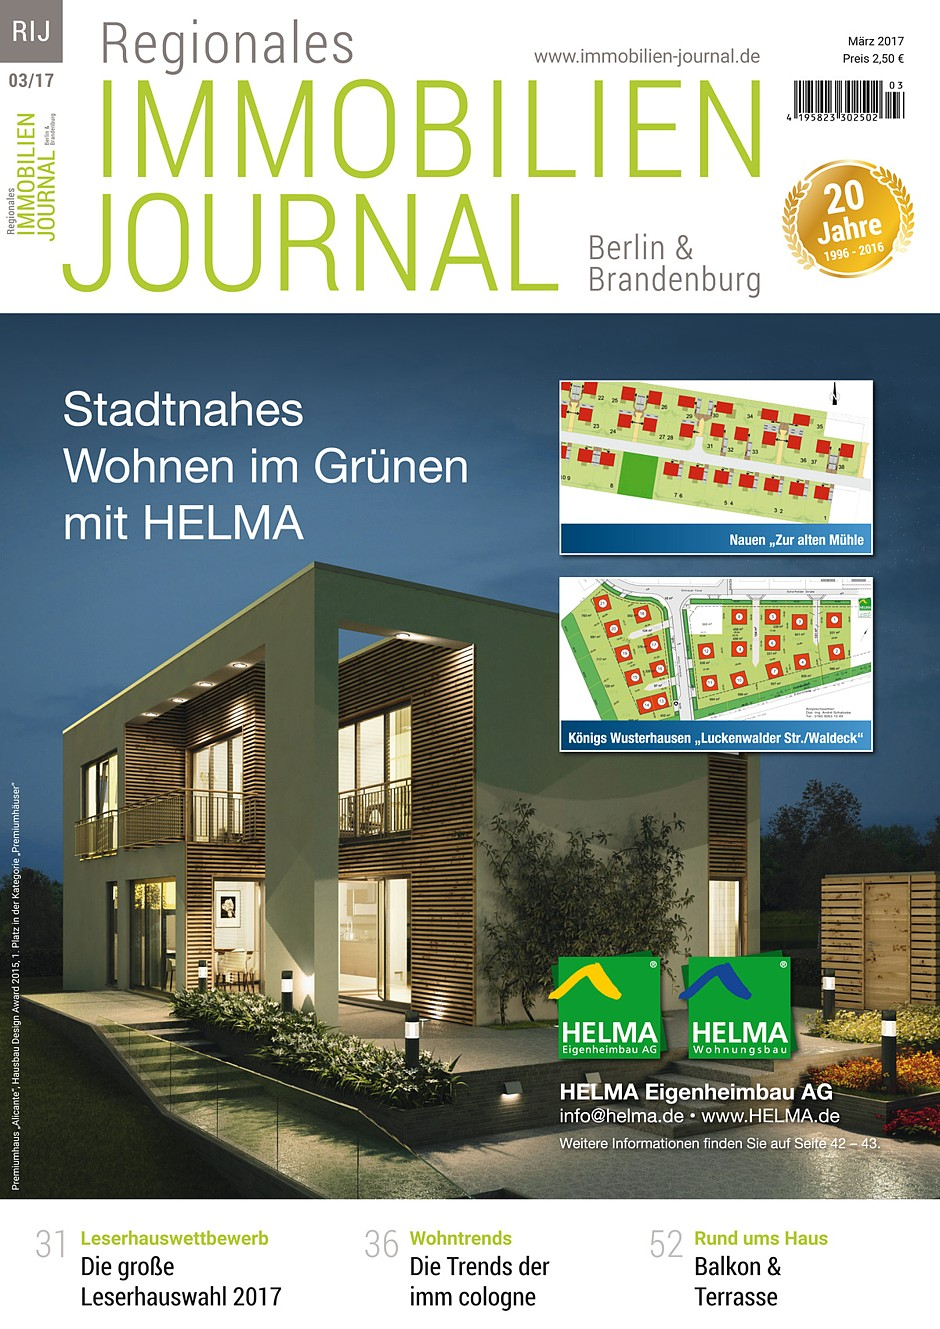 Regionales immobilien journal berlin brandenburg m rz for Hausbaufirmen brandenburg